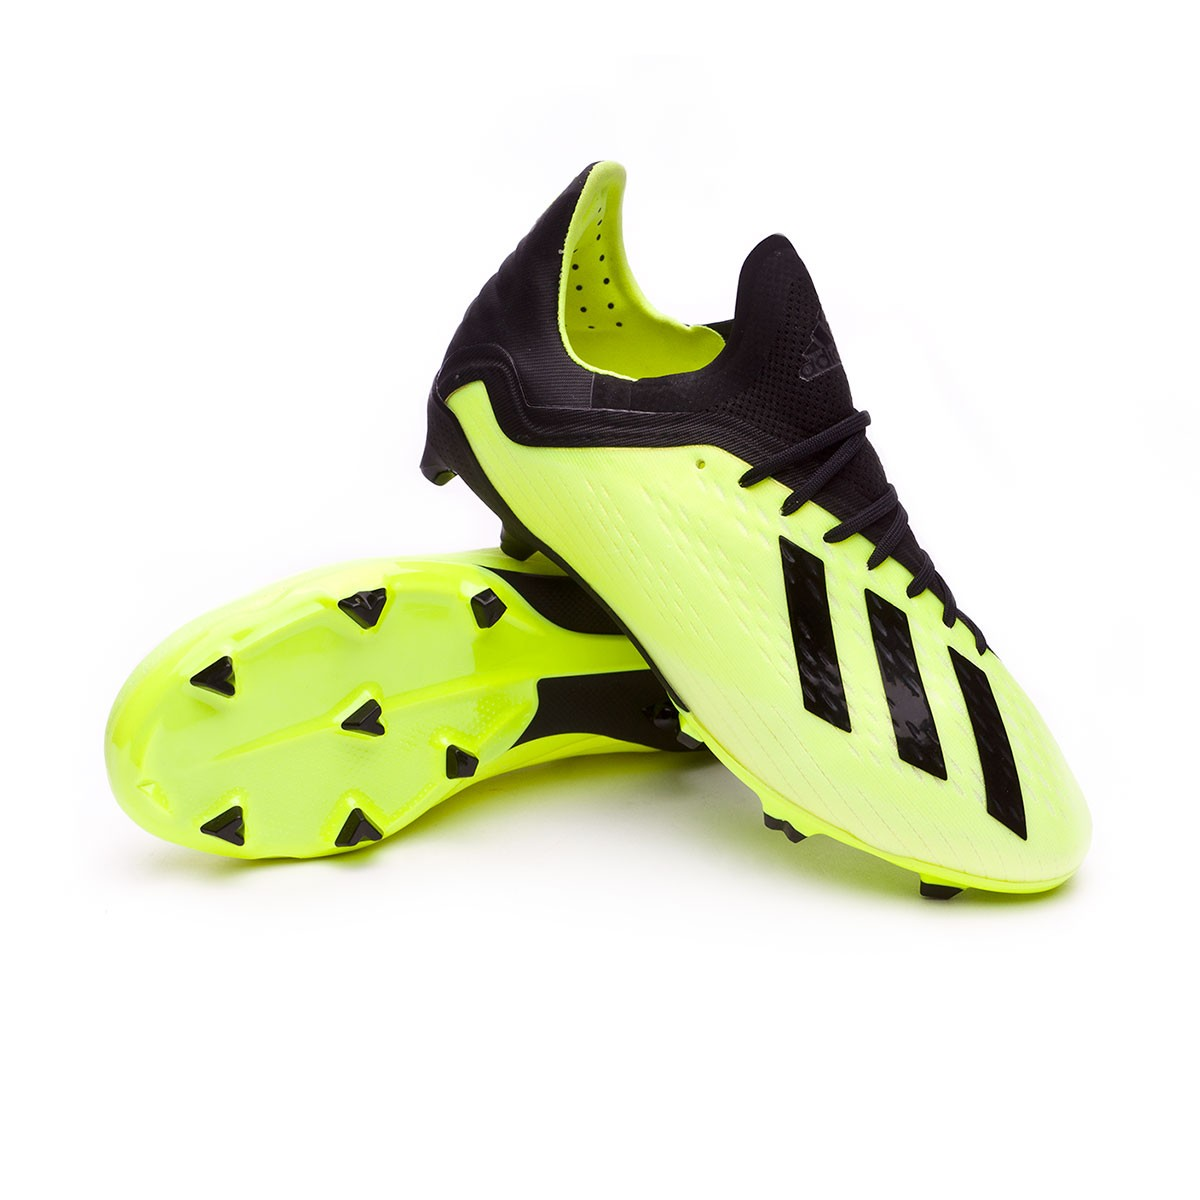 adidas Kids X 18.1 FG Football Boots